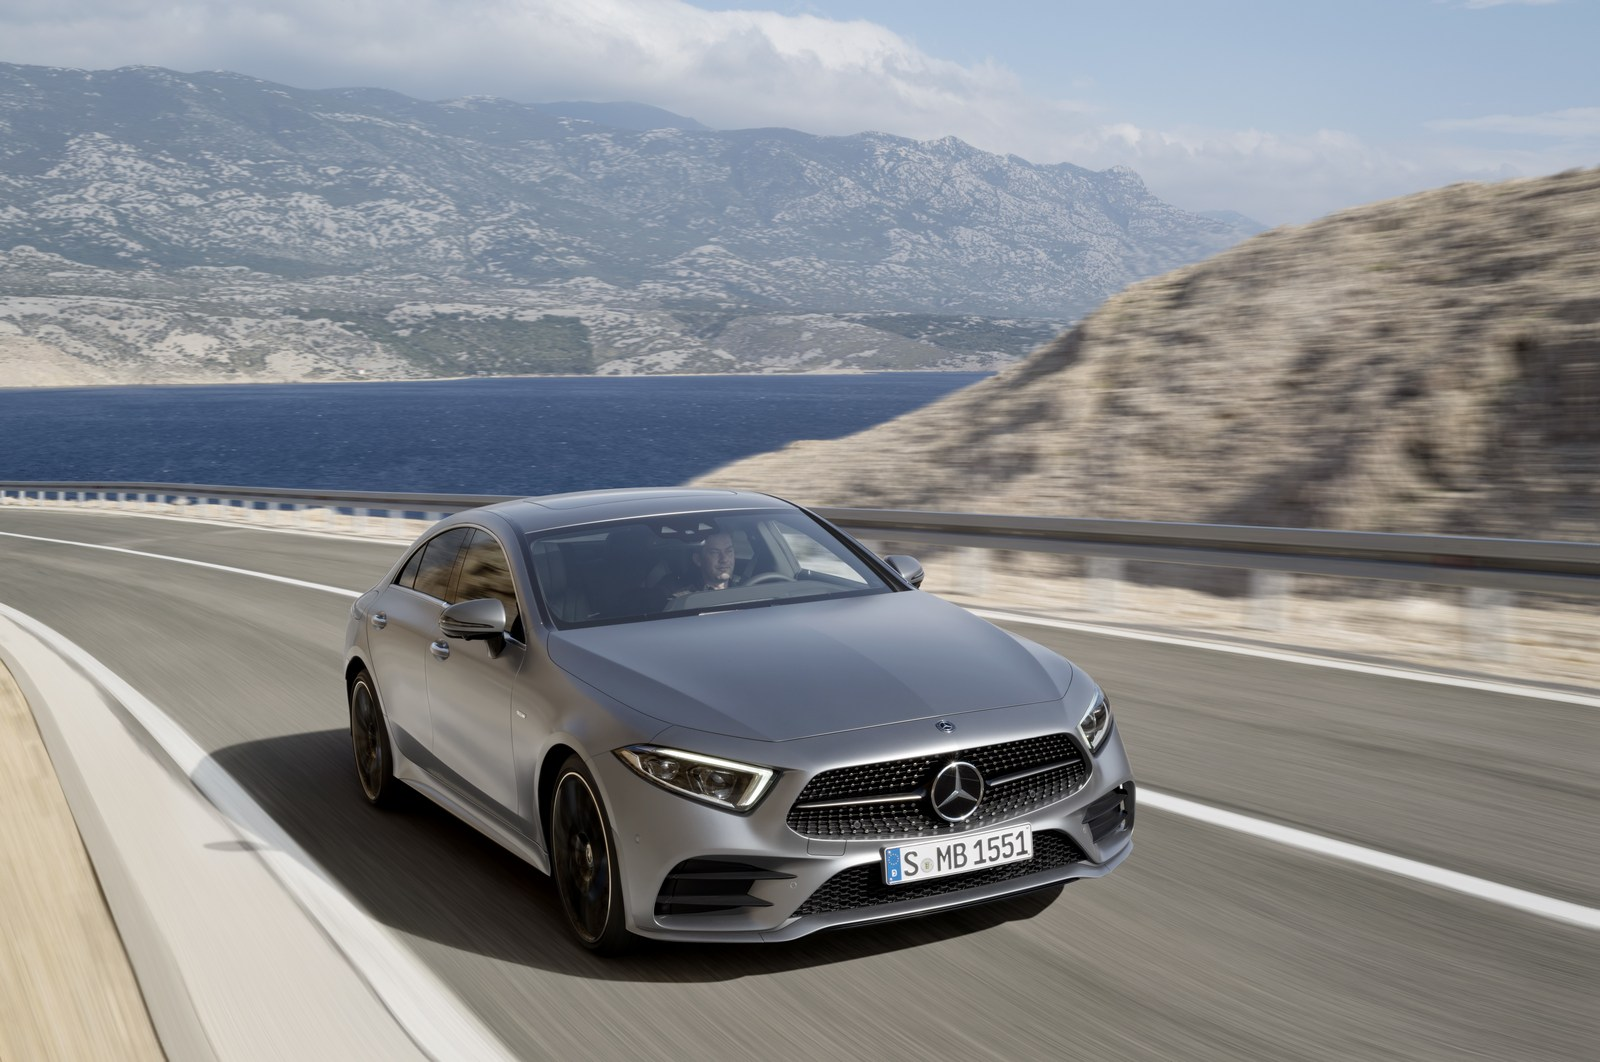 mercedes to drop the cls 63 to make room for the amg gt 4 carscoops. Black Bedroom Furniture Sets. Home Design Ideas